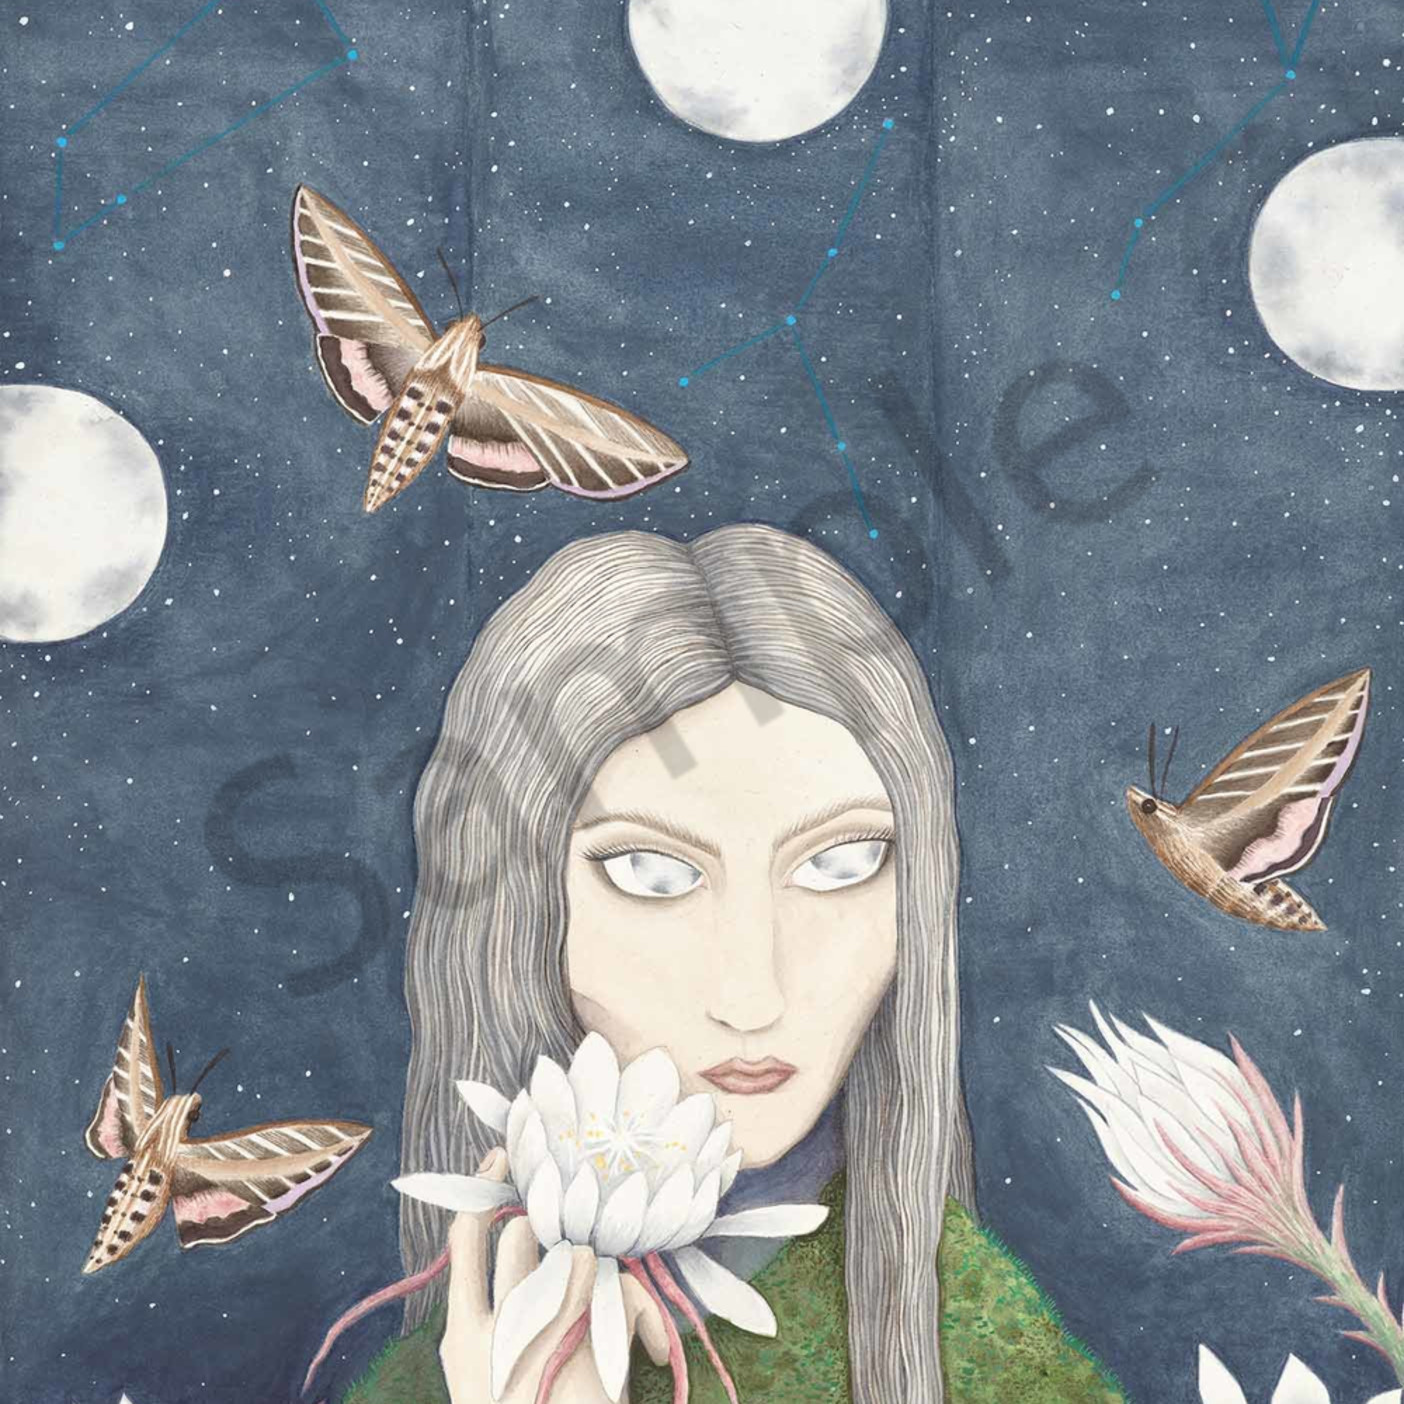 Phoebe trafford 002 the moon is not asleep 2000px lc75wu